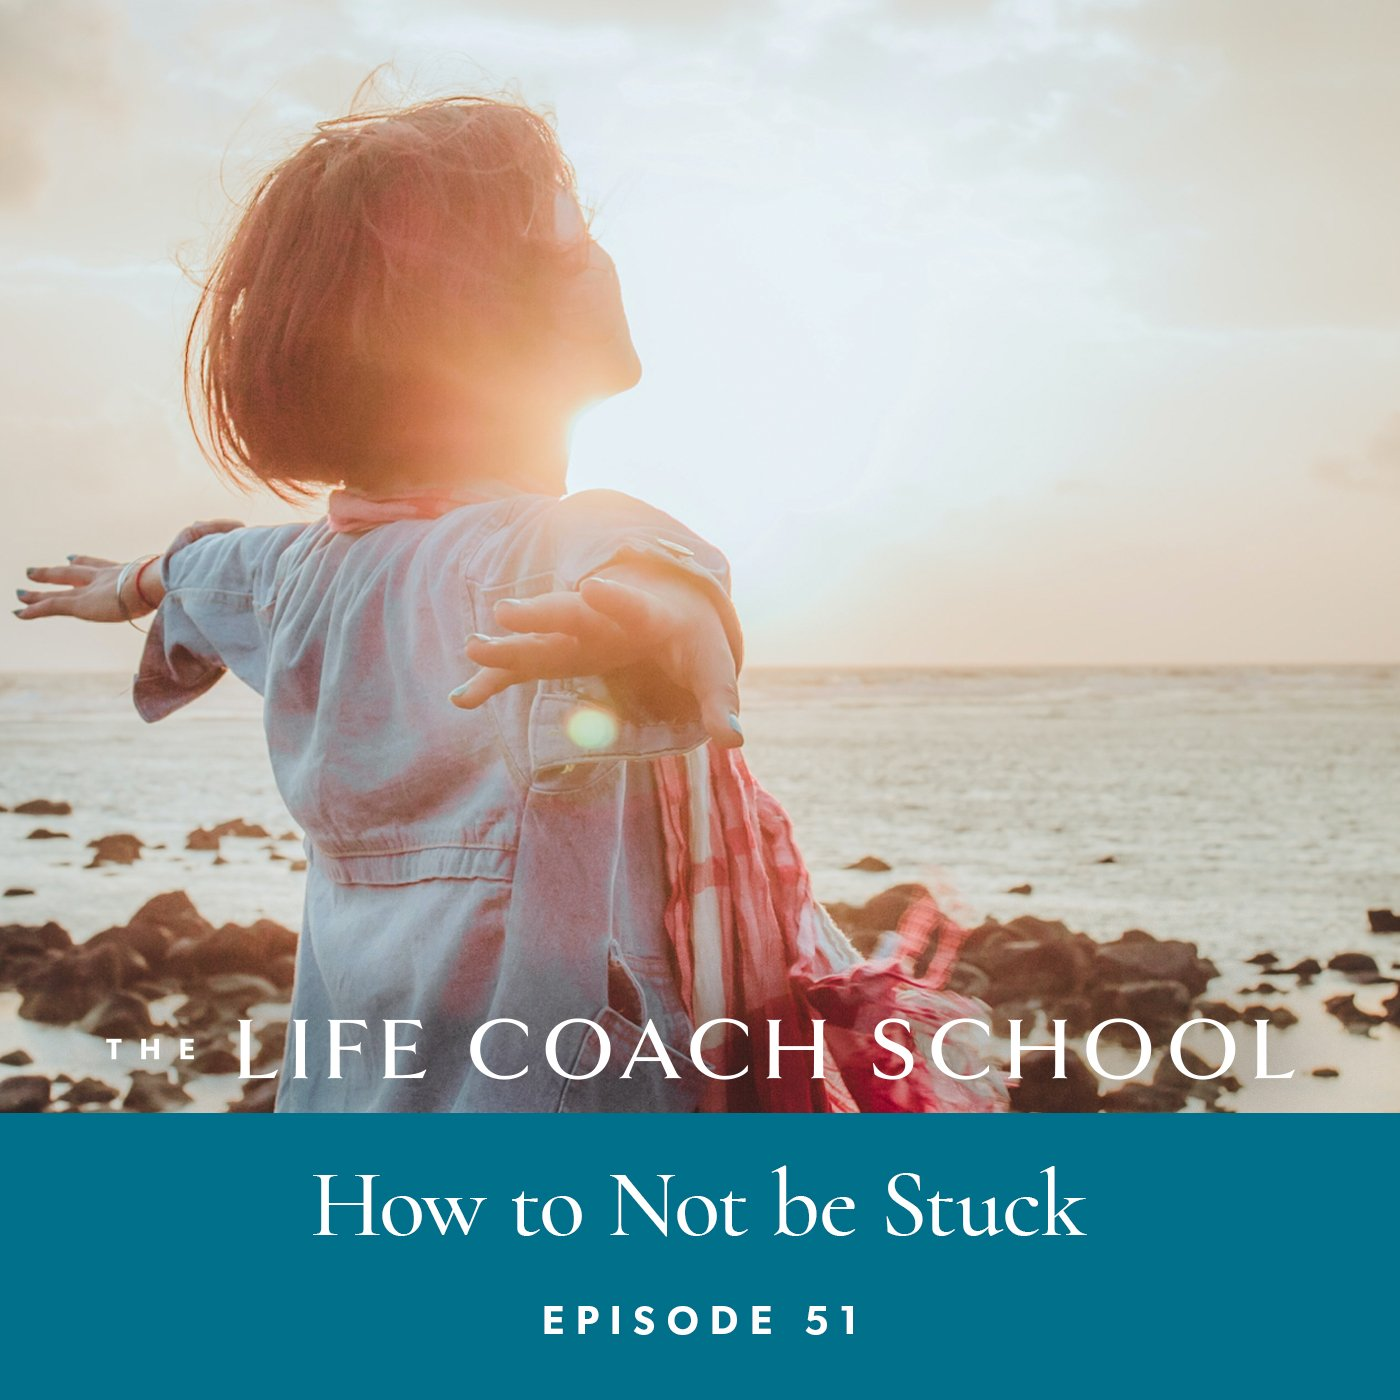 The Life Coach School Podcast with Brooke Castillo | Episode 51 | How to Not Be Stuck